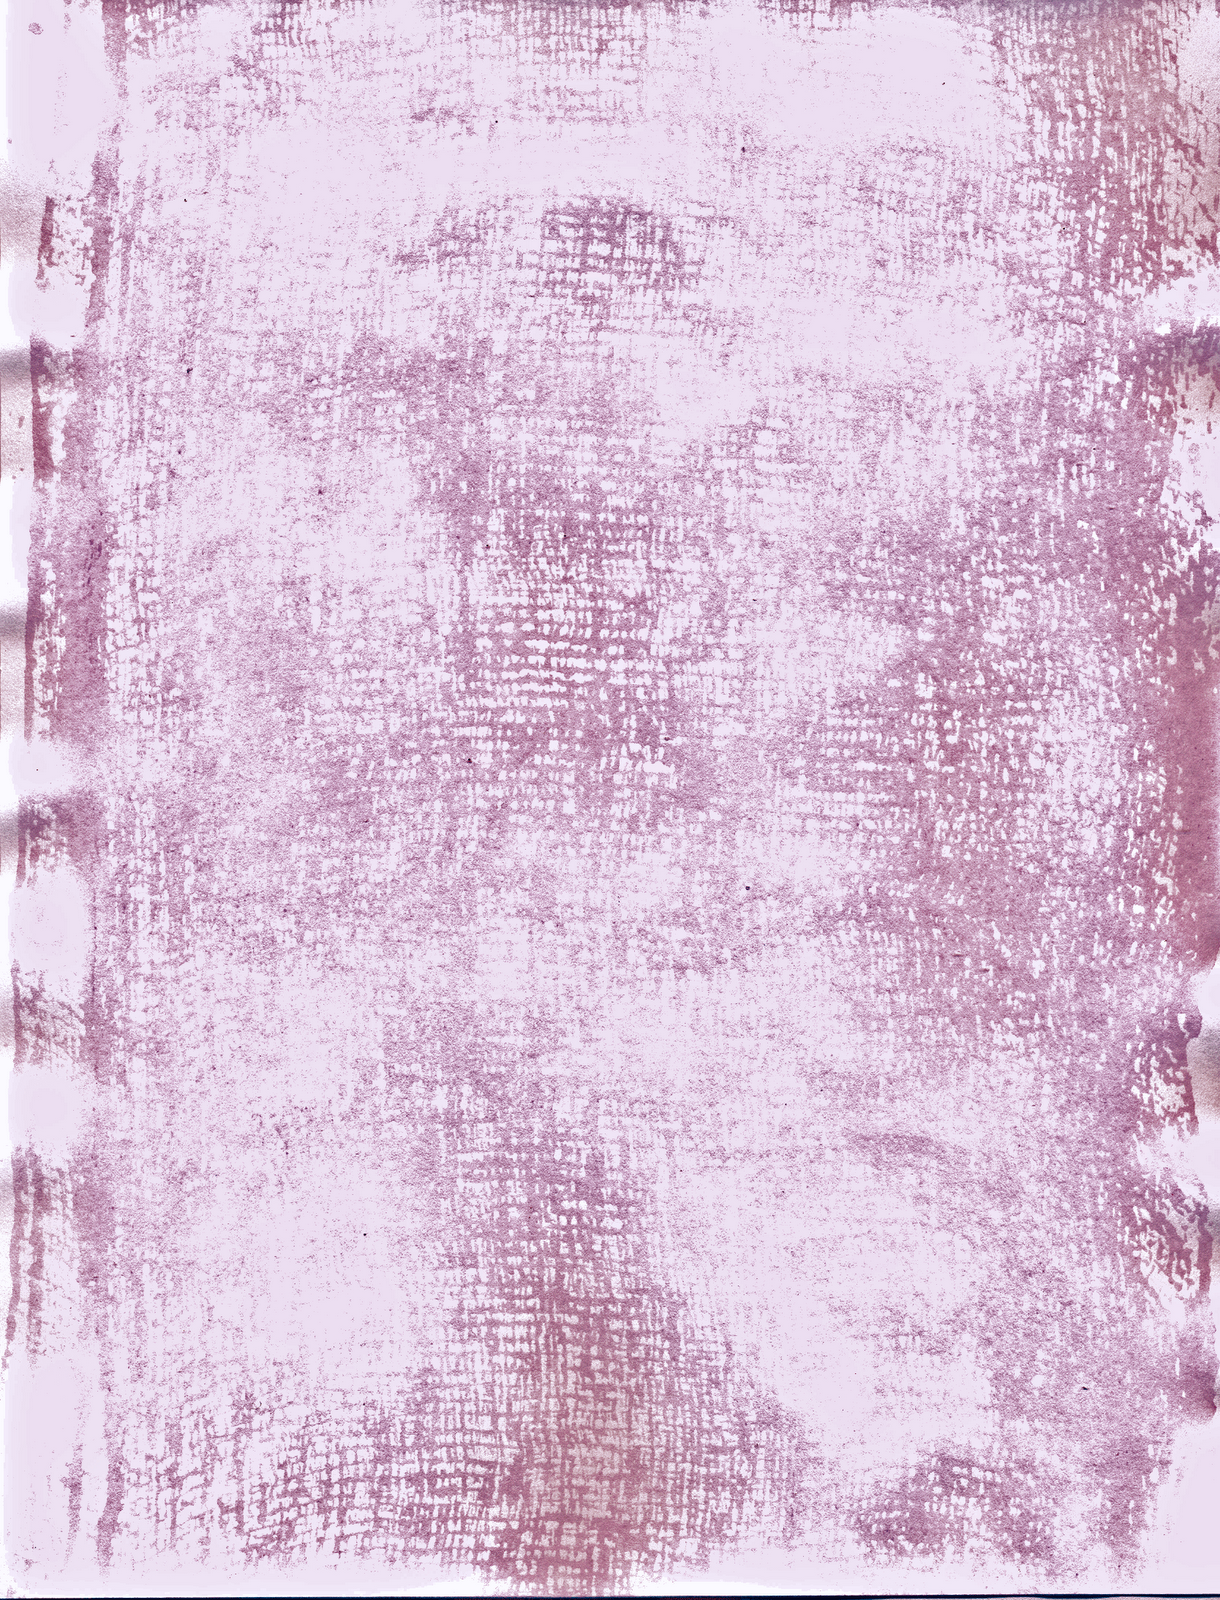 lavender vintage background - photo #8